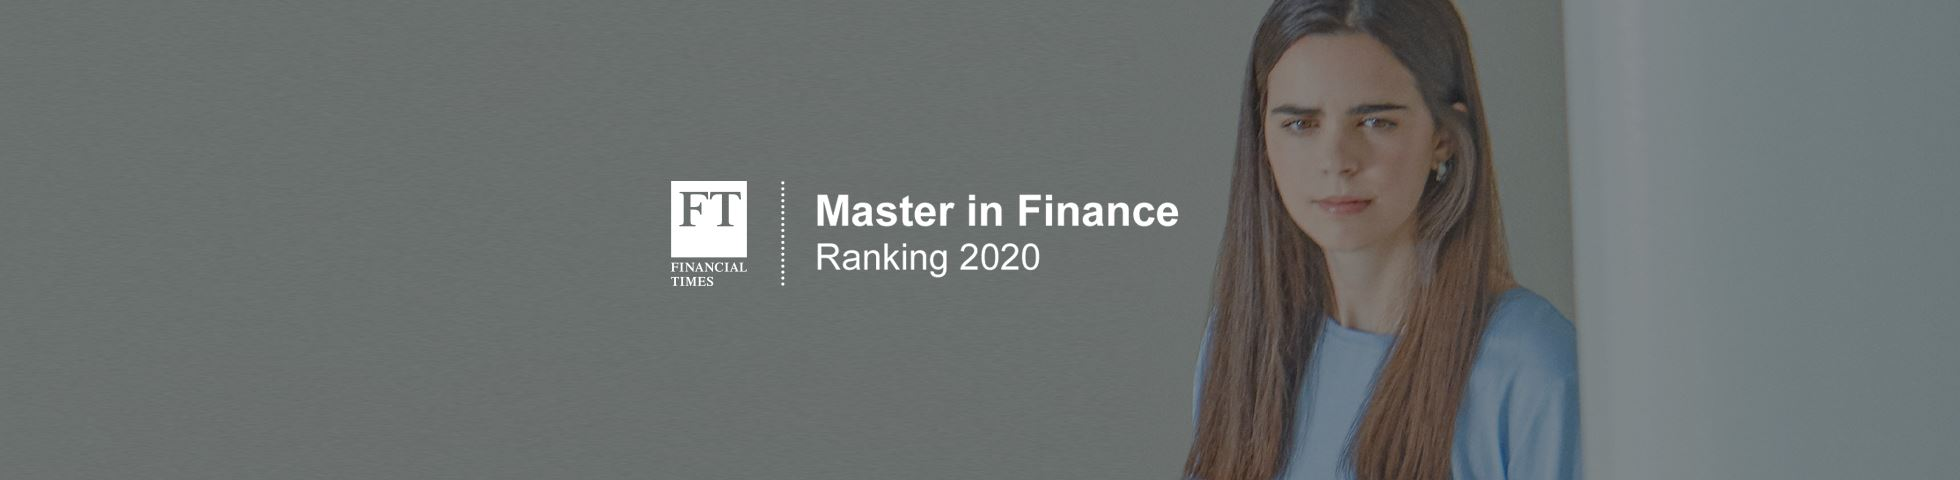 International Master's in Finance at Nova SBE ranked #14 in the world and #12 in Europe by the Financial Times